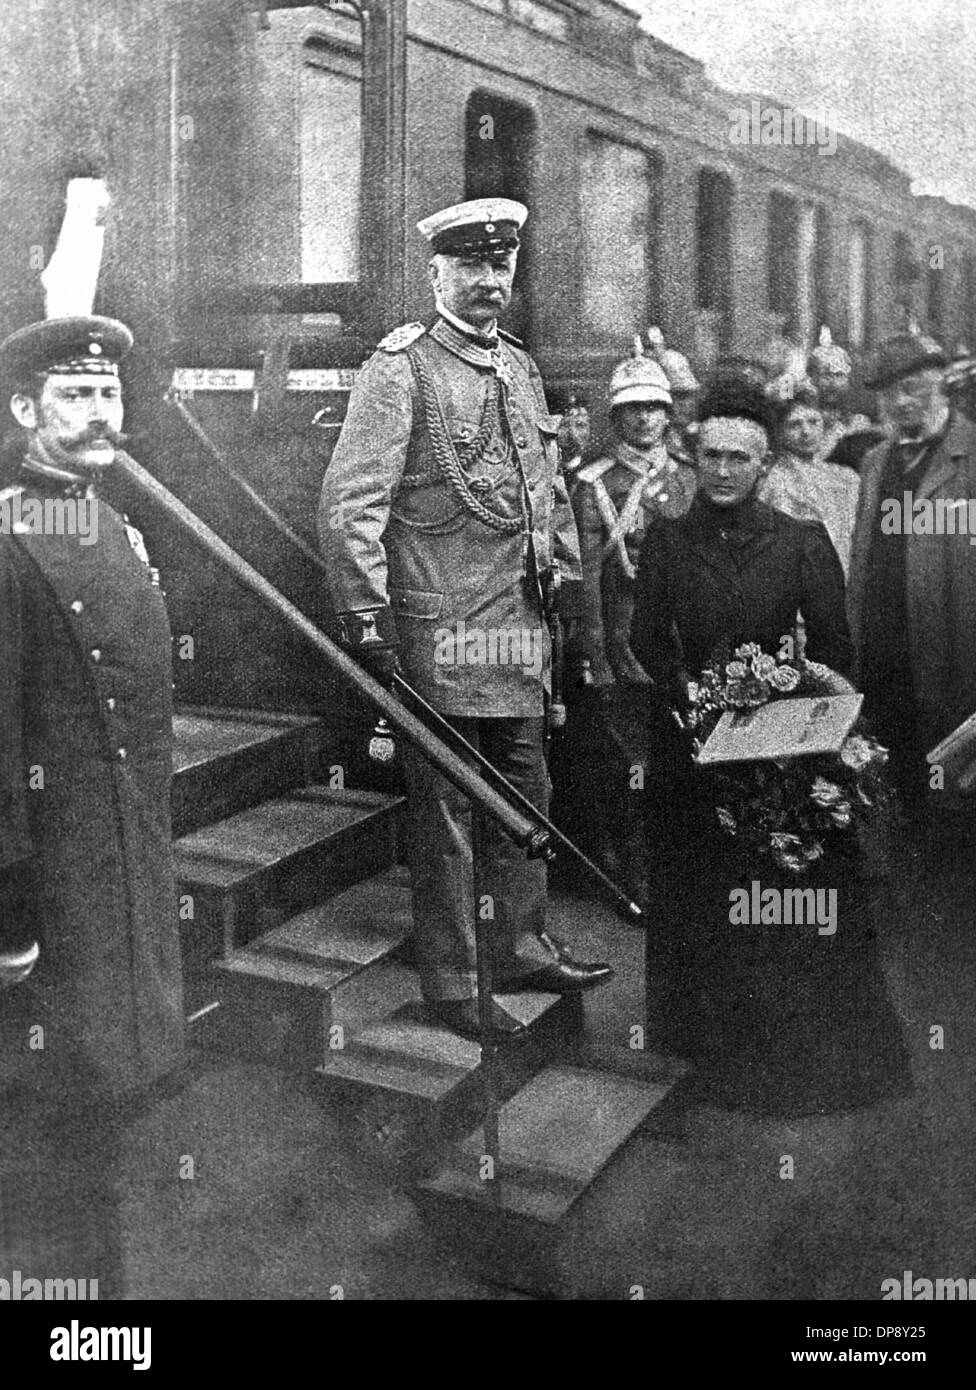 Commander-in-chief of the German troops during the Boxer Rebellion, Alfred Graf von Waldersee, with his wife shortly before the departure to China at Berlin Anhalter Bahnhof. Climax of the Boxer Rebellion was the assassination of the German ambassador Klemens Freiherr von Ketteler on the 19th of June in 1900 as well as the besiegement of the embassy quarter in Beijing from the 20th of June until the 14th of August in 1900 by an expedition corps consisting of eight states (Germany, France, Great Britain, Italy, Japan, Austria-Hungary, Russia and the USA). Numerous bloody punitive expeditions ag - Stock Image